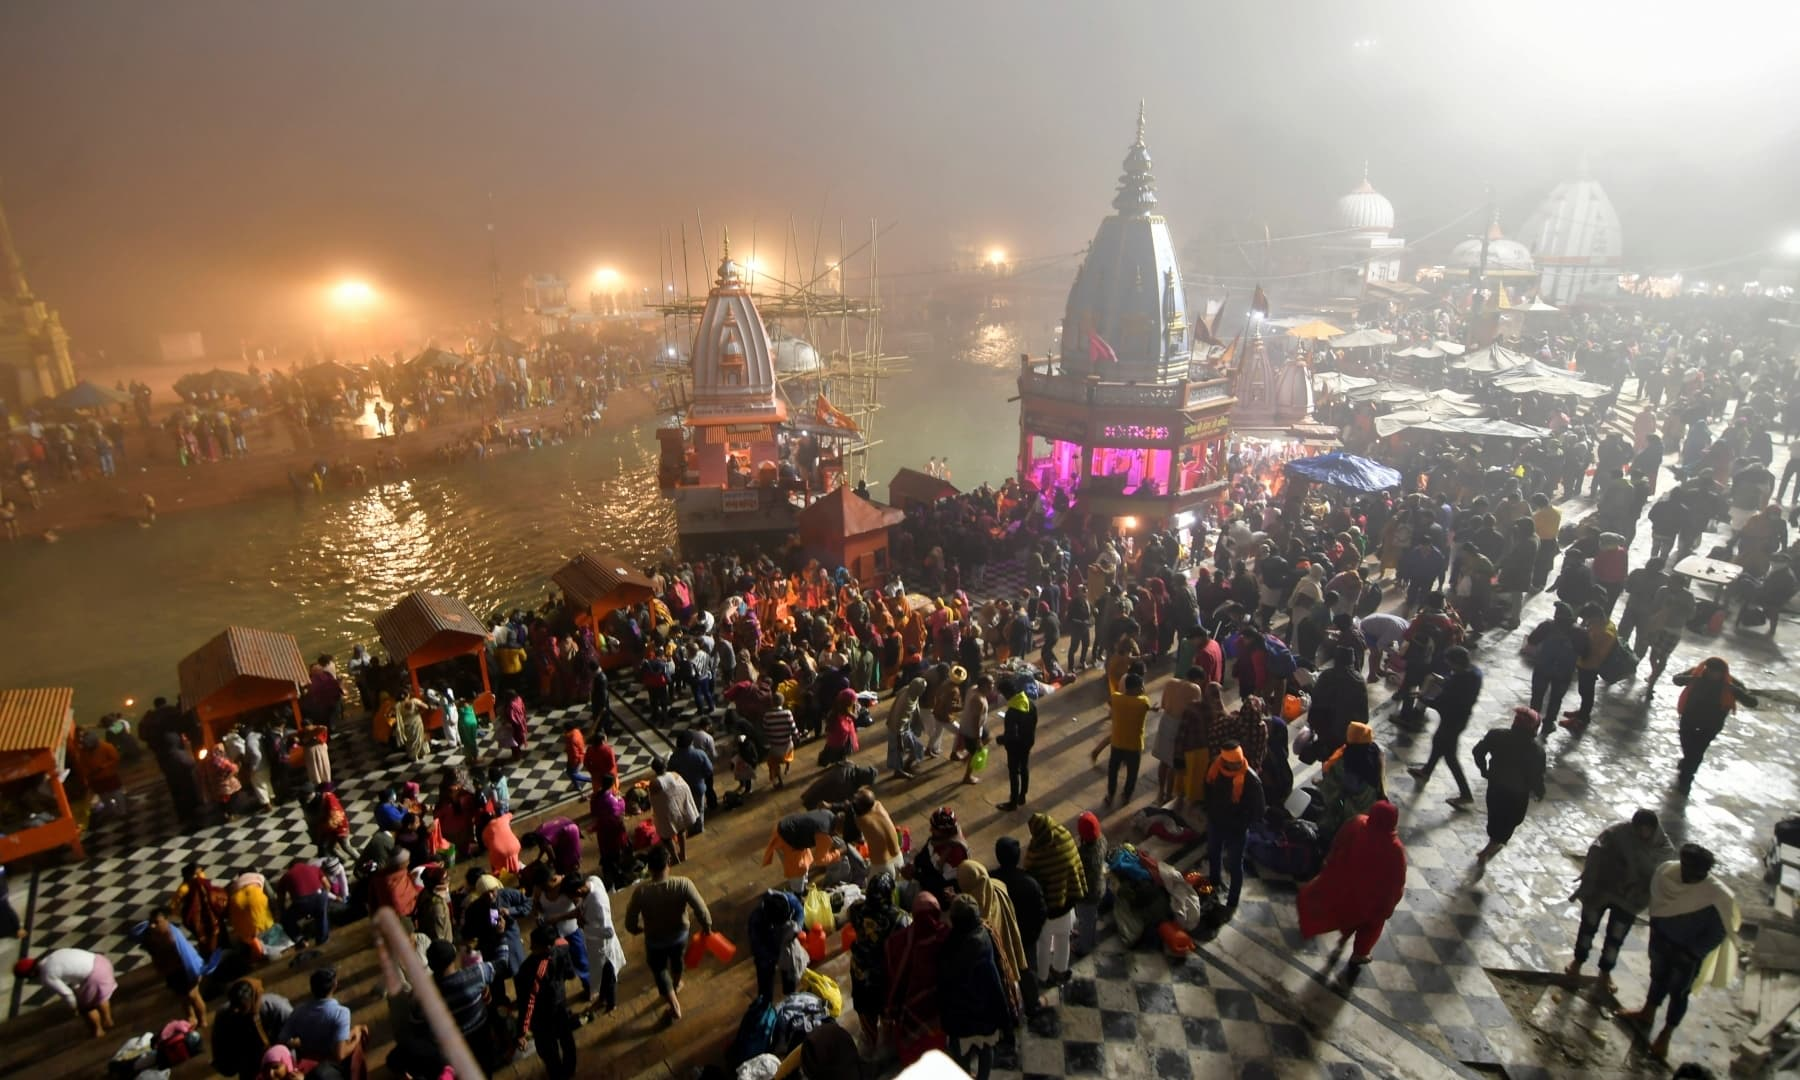 """Hindu devotees gather to take a holy dip in the waters of river Ganges to mark """"Makar Sankranti"""" festival, amidst the spread of the coronavirus disease, in Haridwar, India, January 14. — Reuters"""